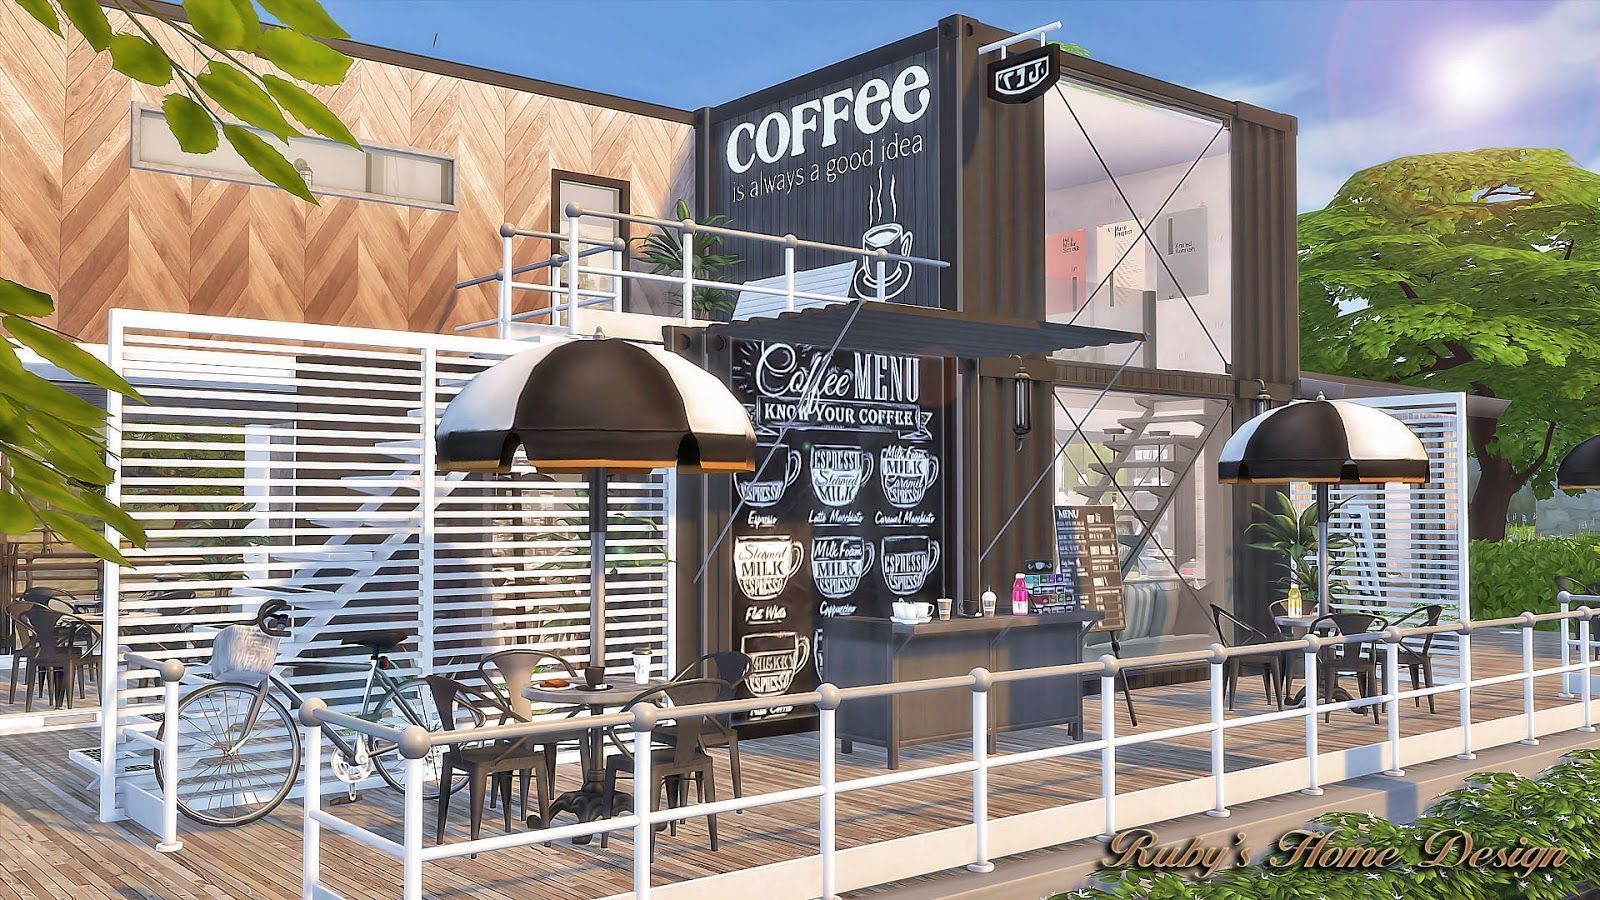 Sims4 Container Coffee Shop Rubys Home Design Sims 4